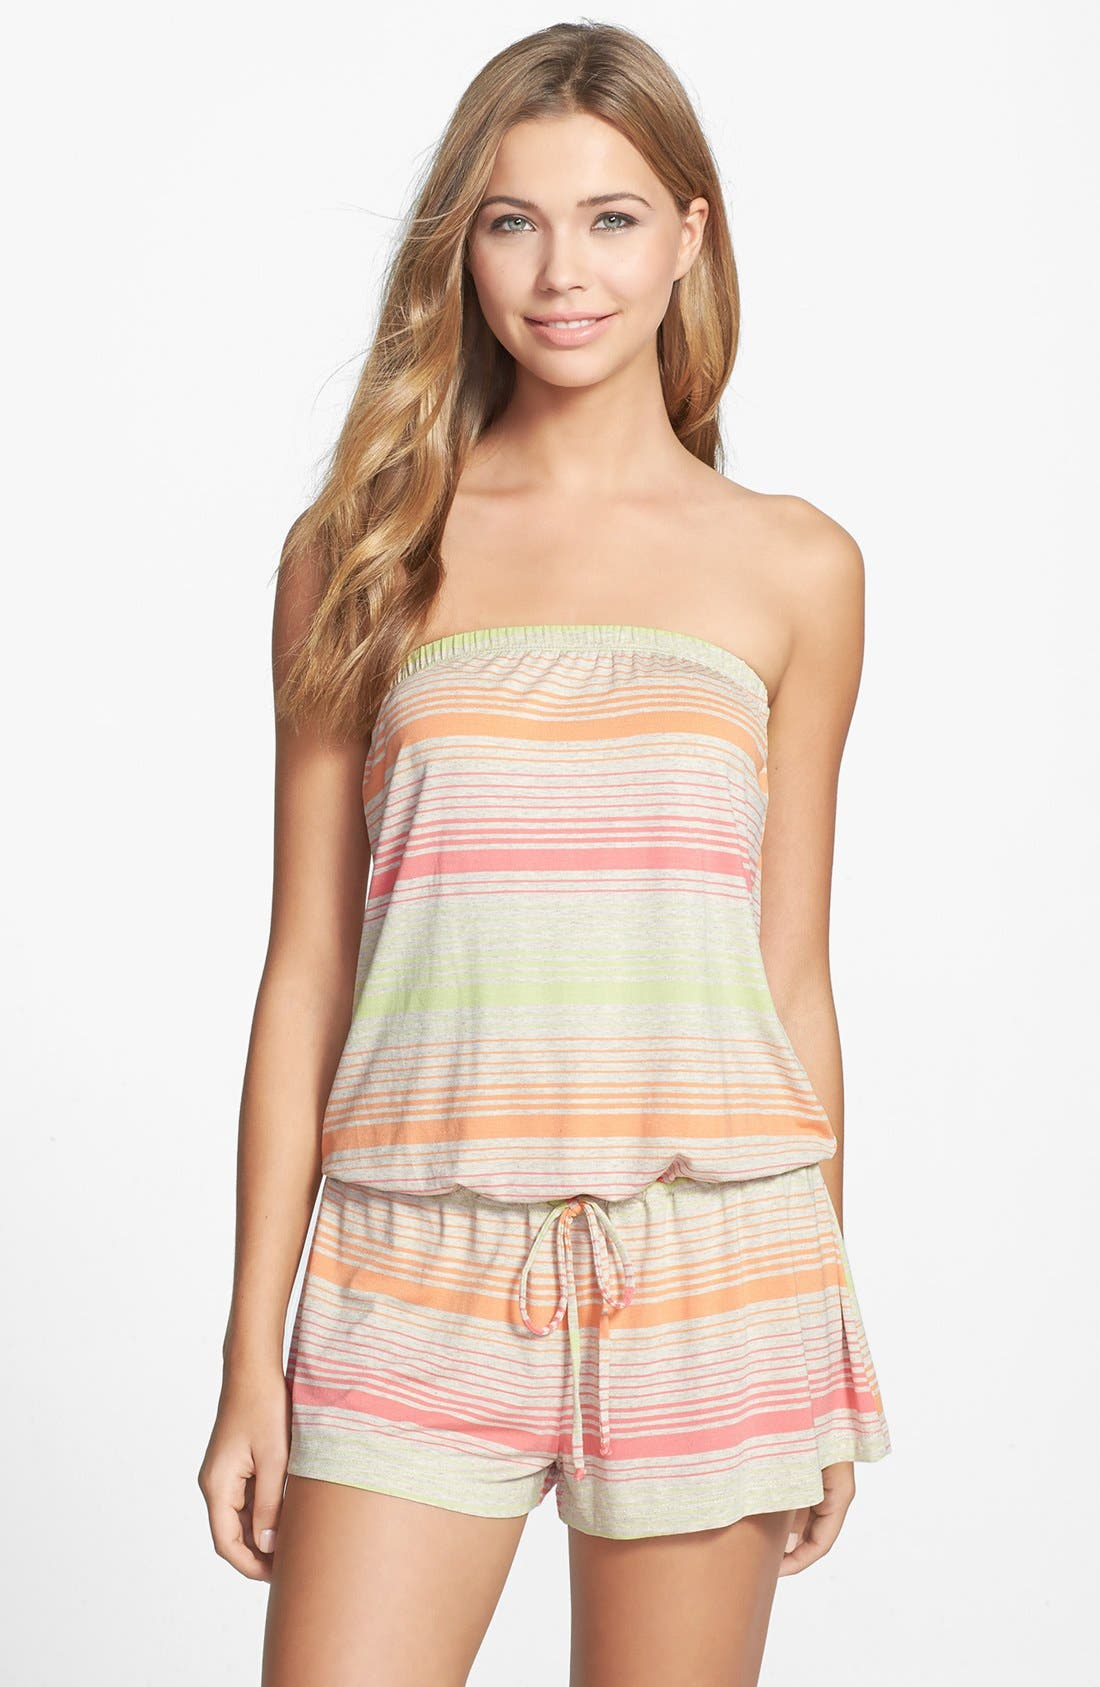 Alternate Image 1 Selected - Lucky Brand Swimwear 'Neutral Territory' Strapless Cover-Up Romper